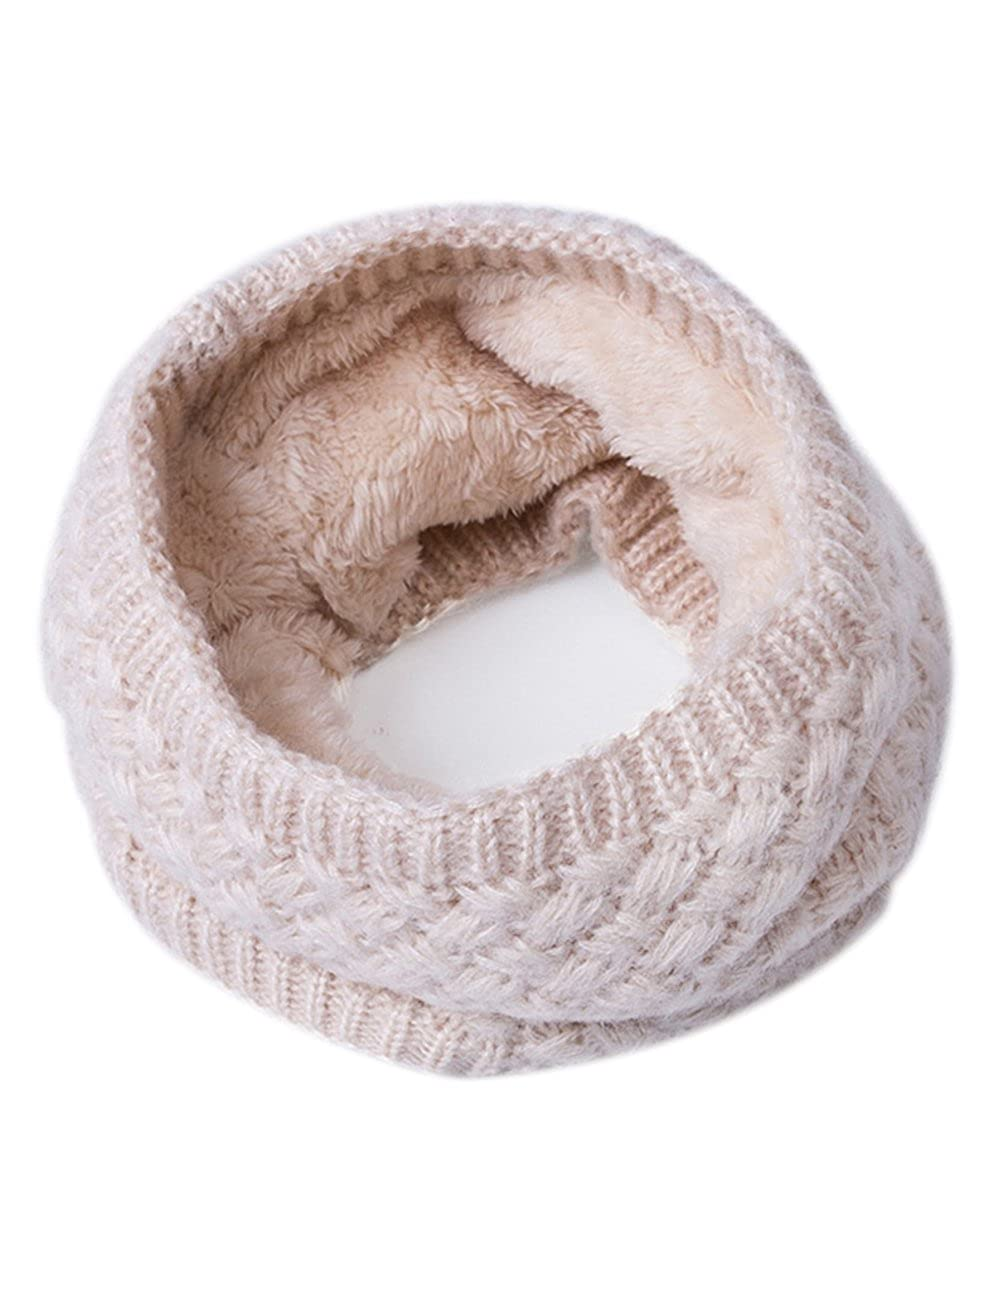 c9c822b615627 Top 10 wholesale Knitted Neck Warmer - Chinabrands.com